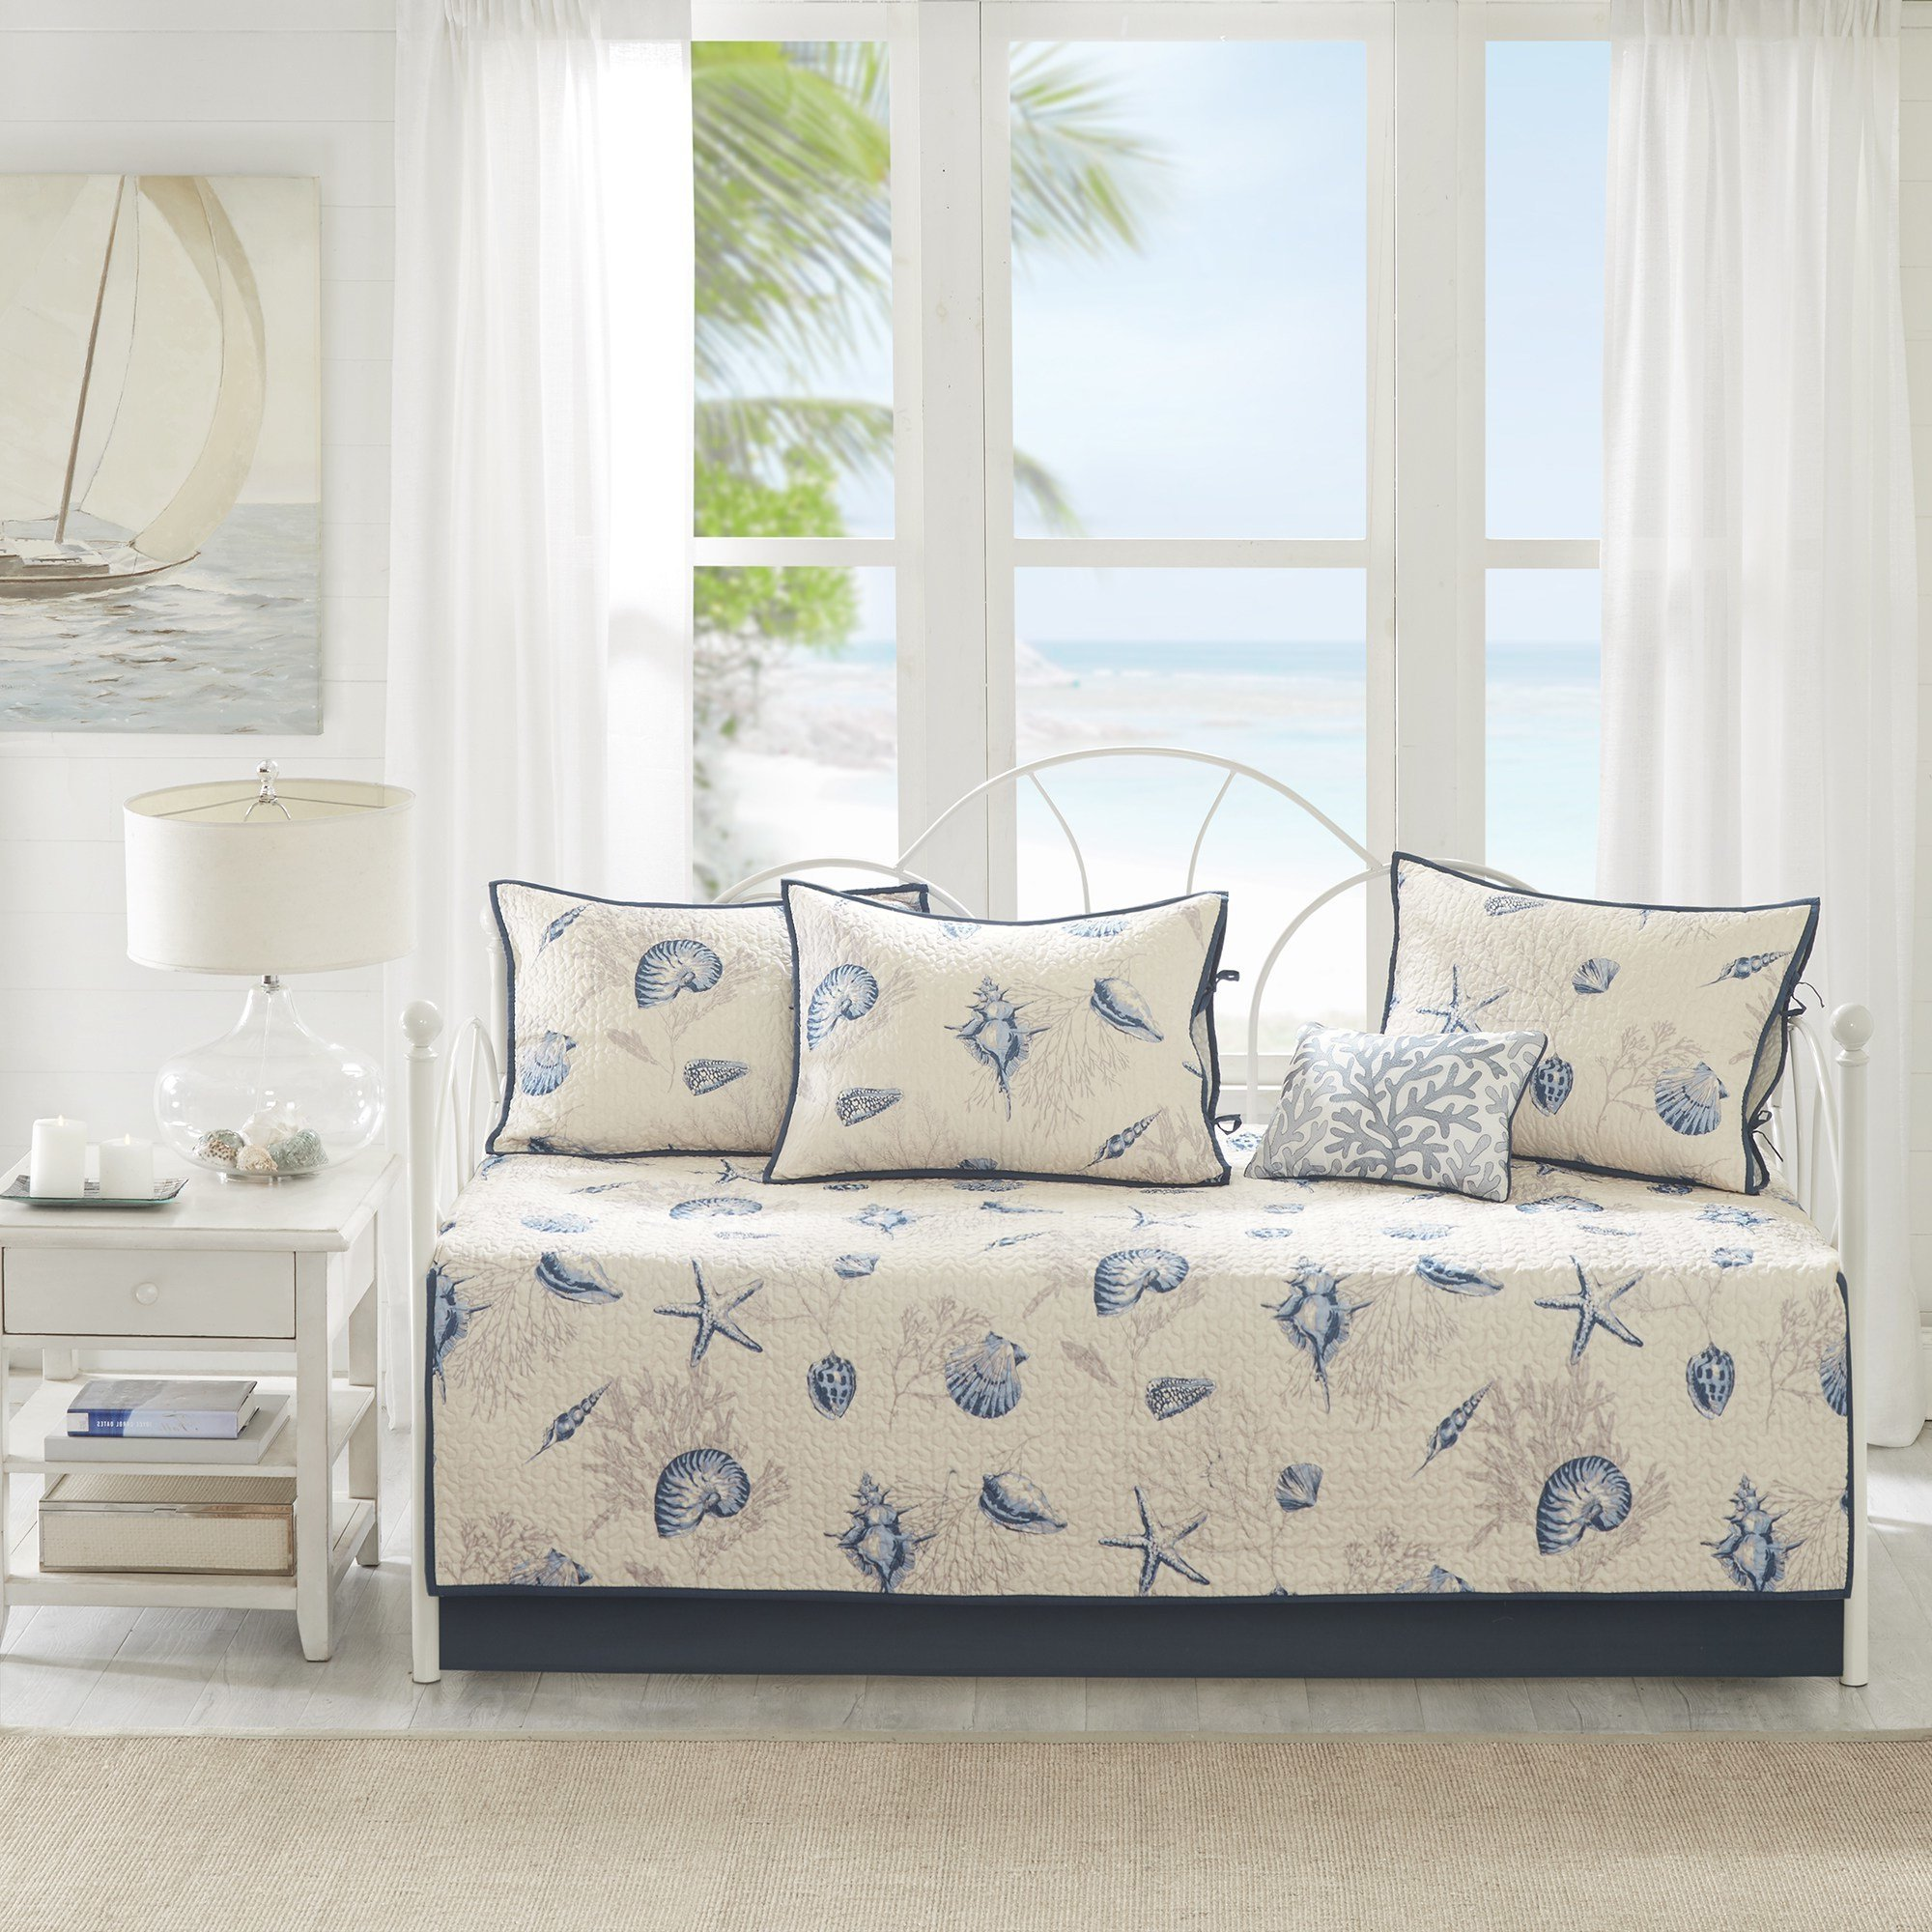 6 Piece Grey Blue Beach Theme Daybed Set Bedding, Nautical Coastal Tropical Ocean Sea Shells Starfish Coral Reefs Pattern Day Bed Bedskirt Pillows, Polyester